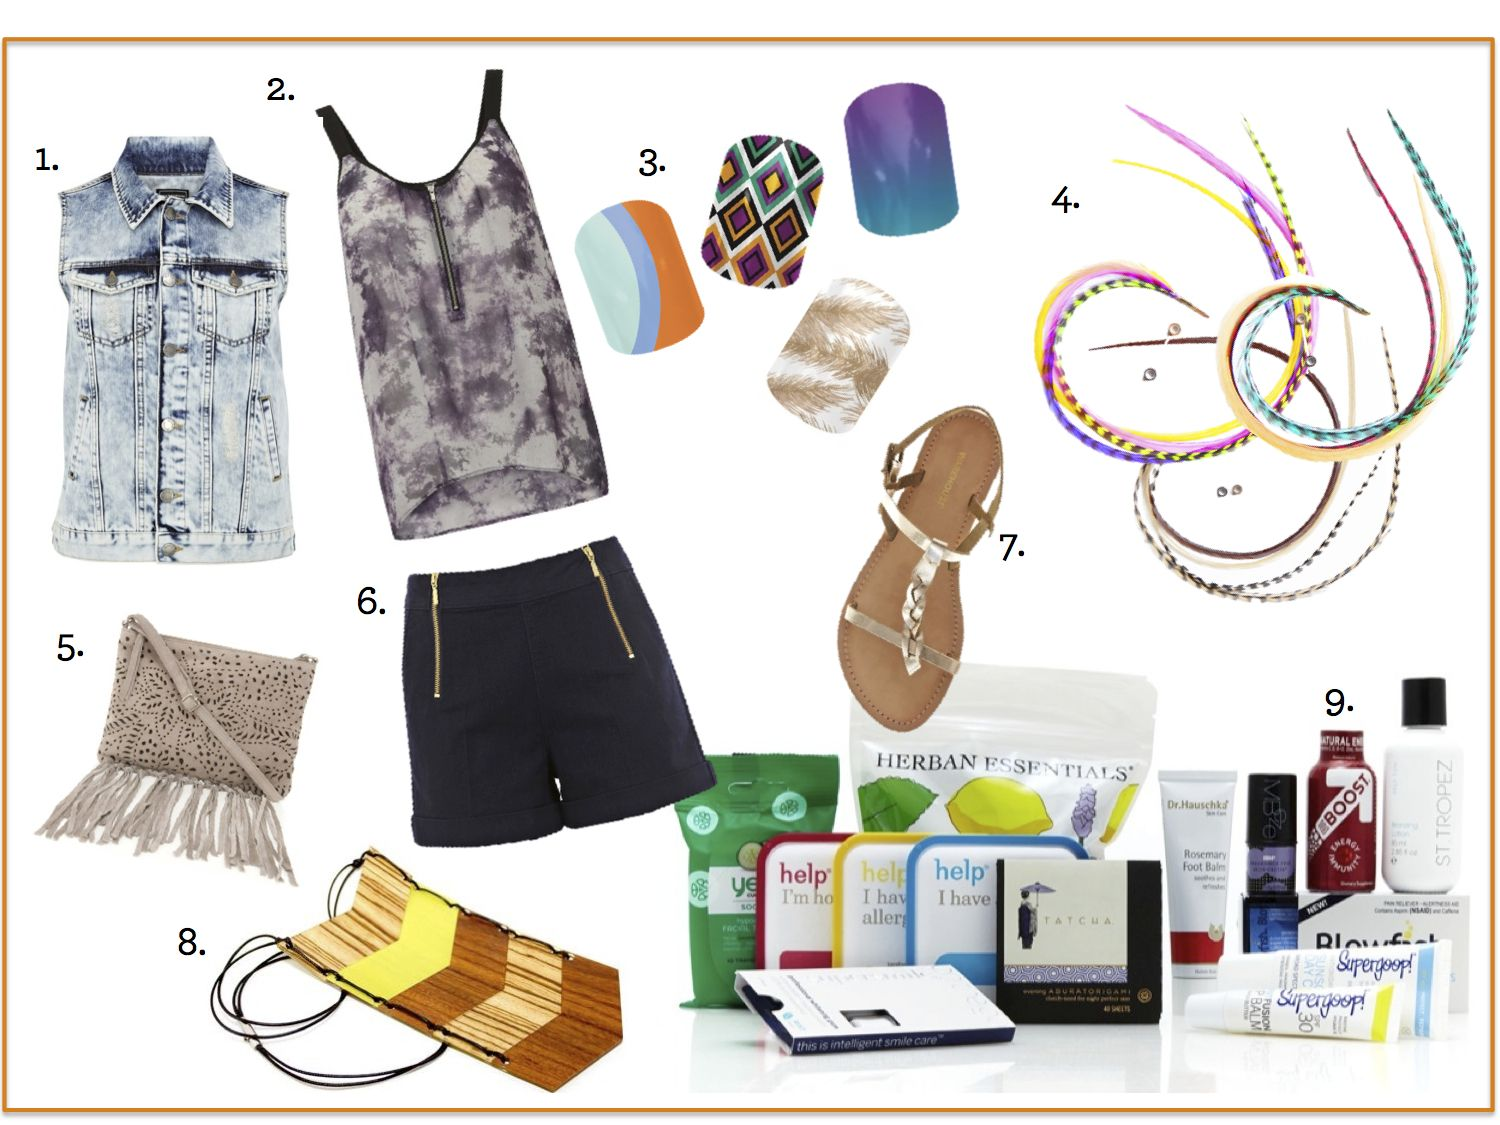 Whether you are going to Coachella or just want to emulate festival style these 9 products are must haves this Spring!